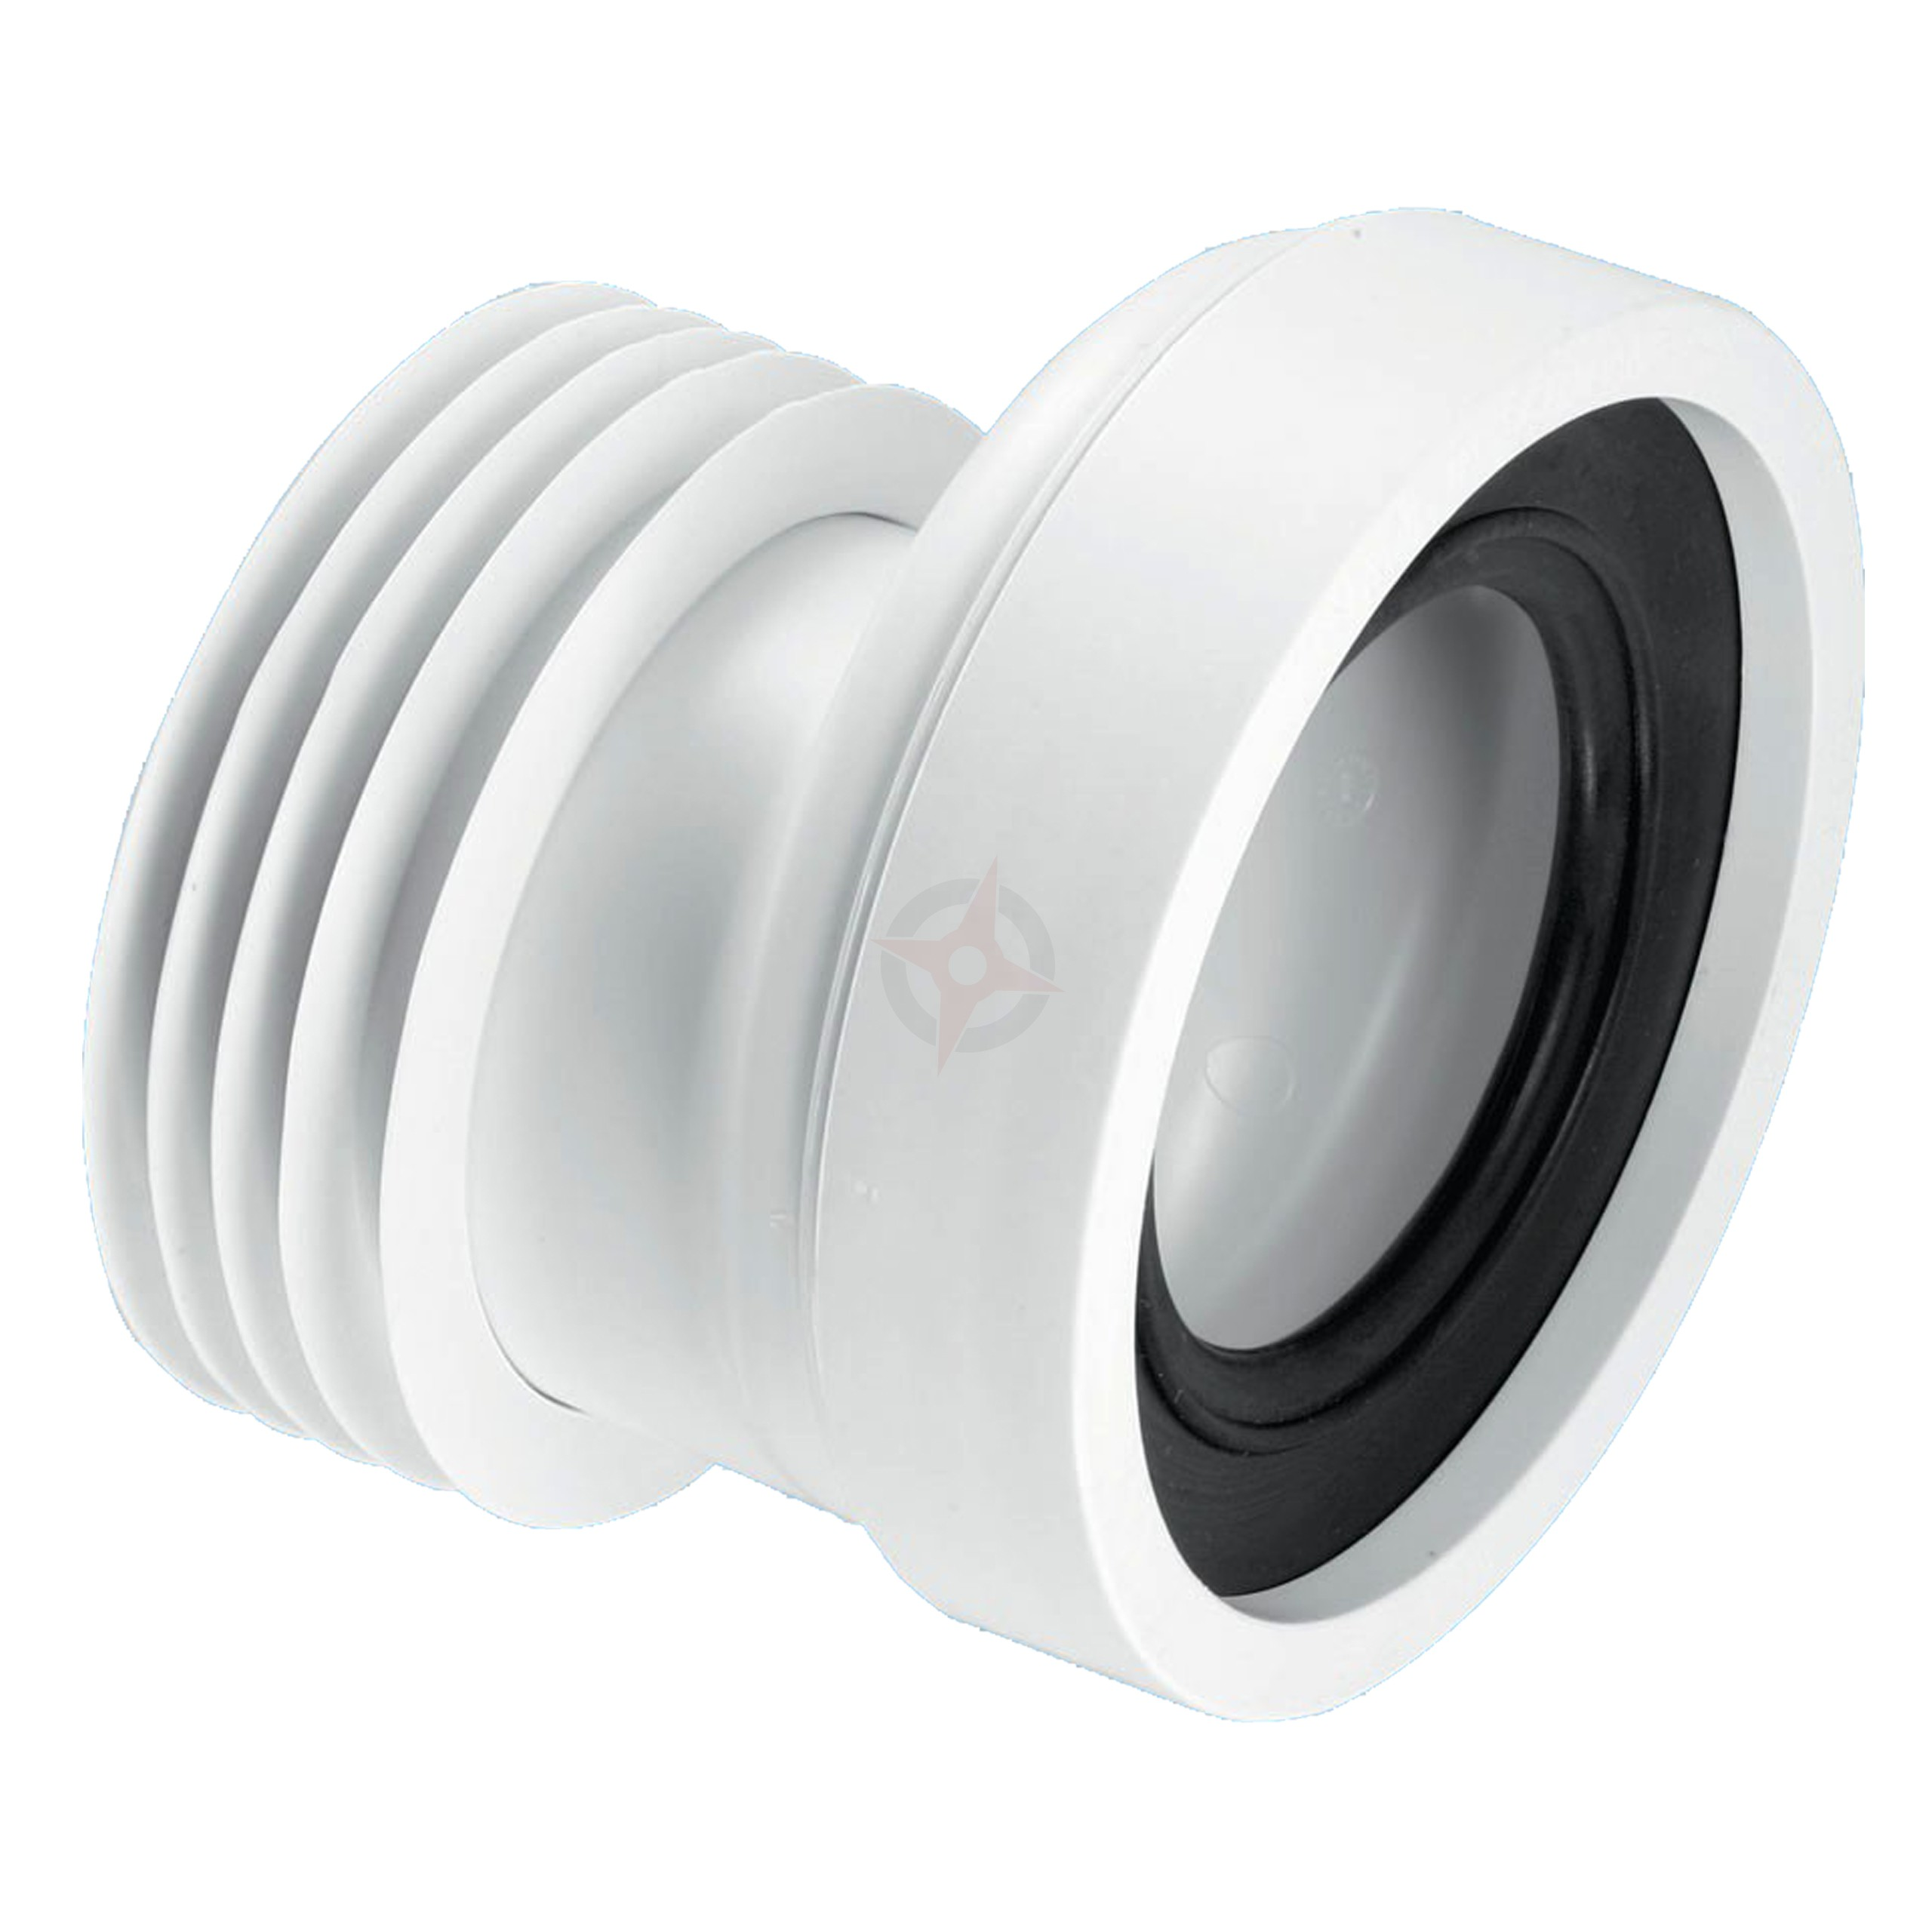 McAlpine 110mm Outlet x 20mm Offset Pan Connector WC-CON4